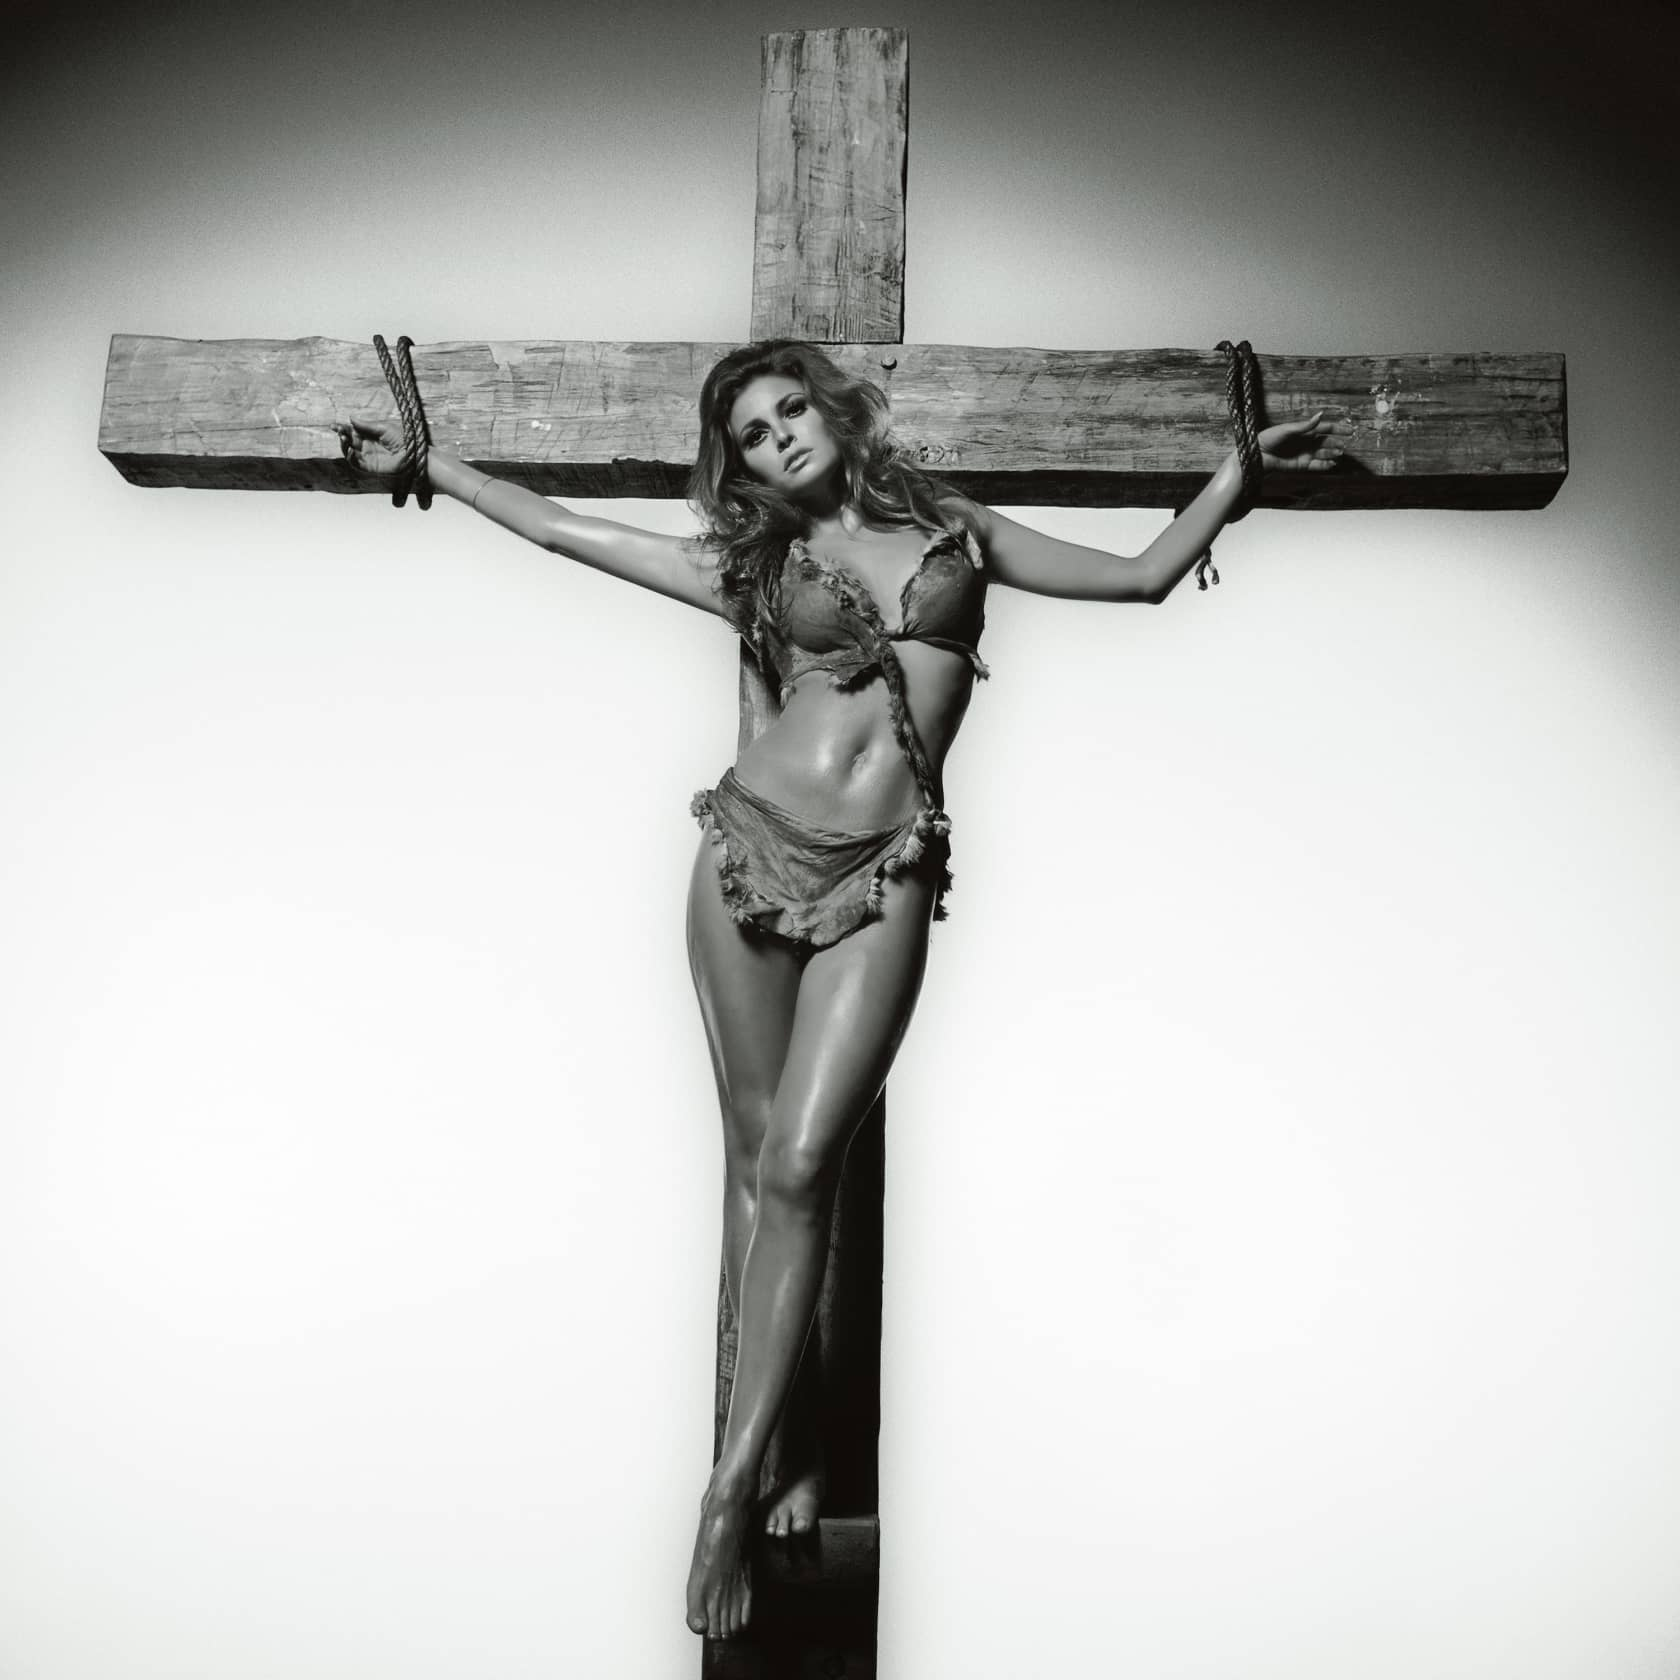 Terry O'Neill Raquel Welch on the Cross Lifetime Gelatin Silver Print